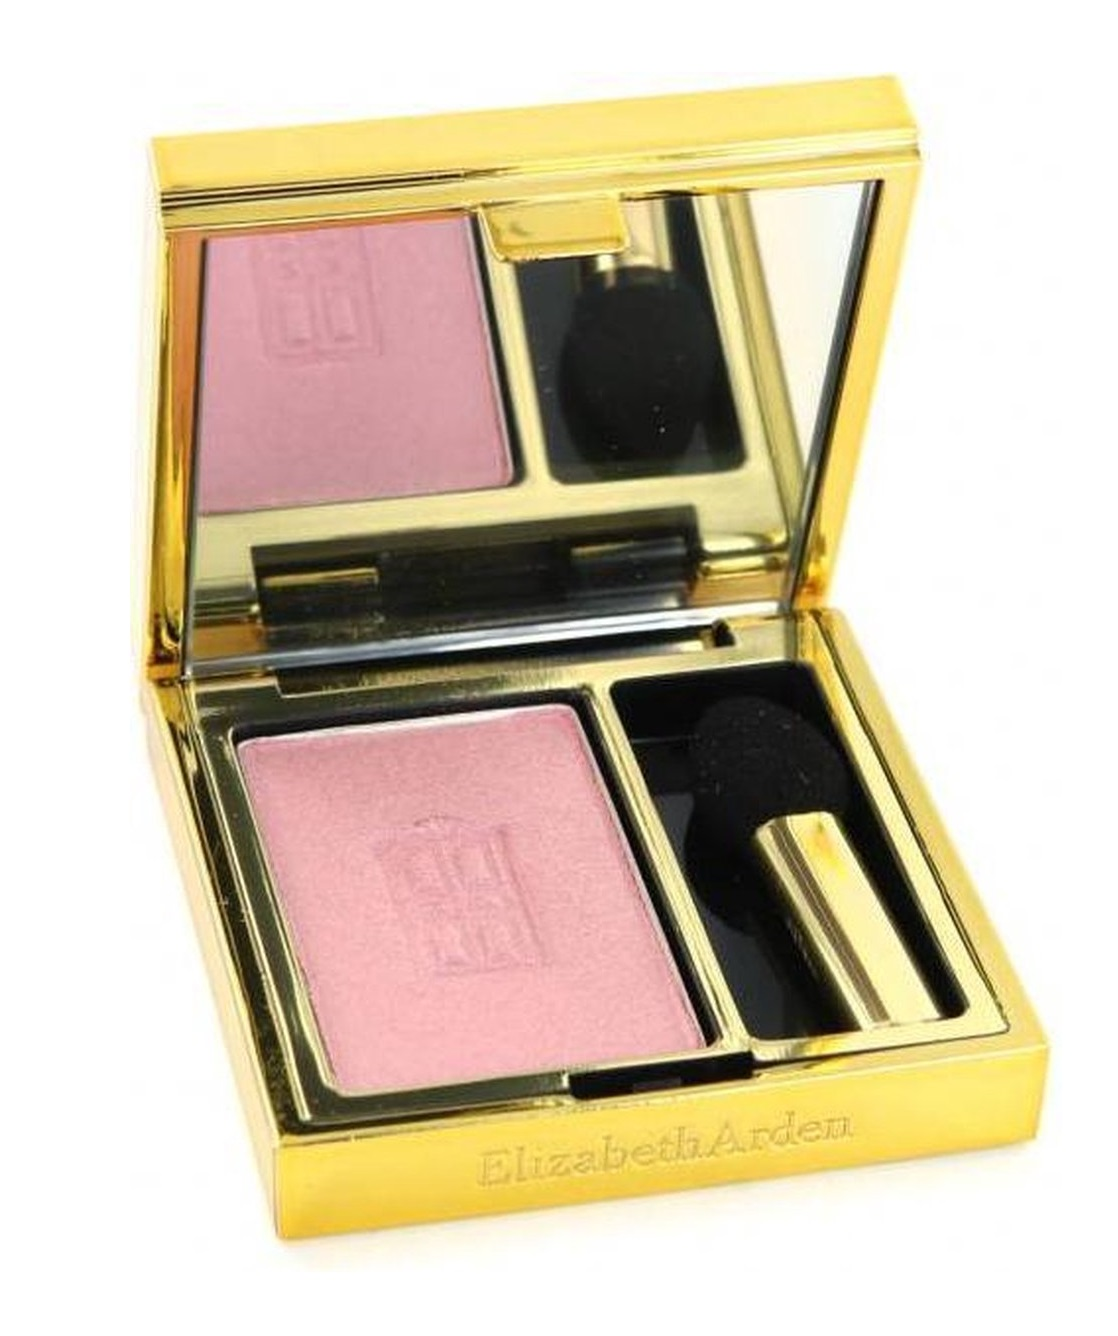 ELIZABETH ARDEN BEAUTIFUL COLOR EYE SHADOW IRIDESCENT PINK 2.5 GR